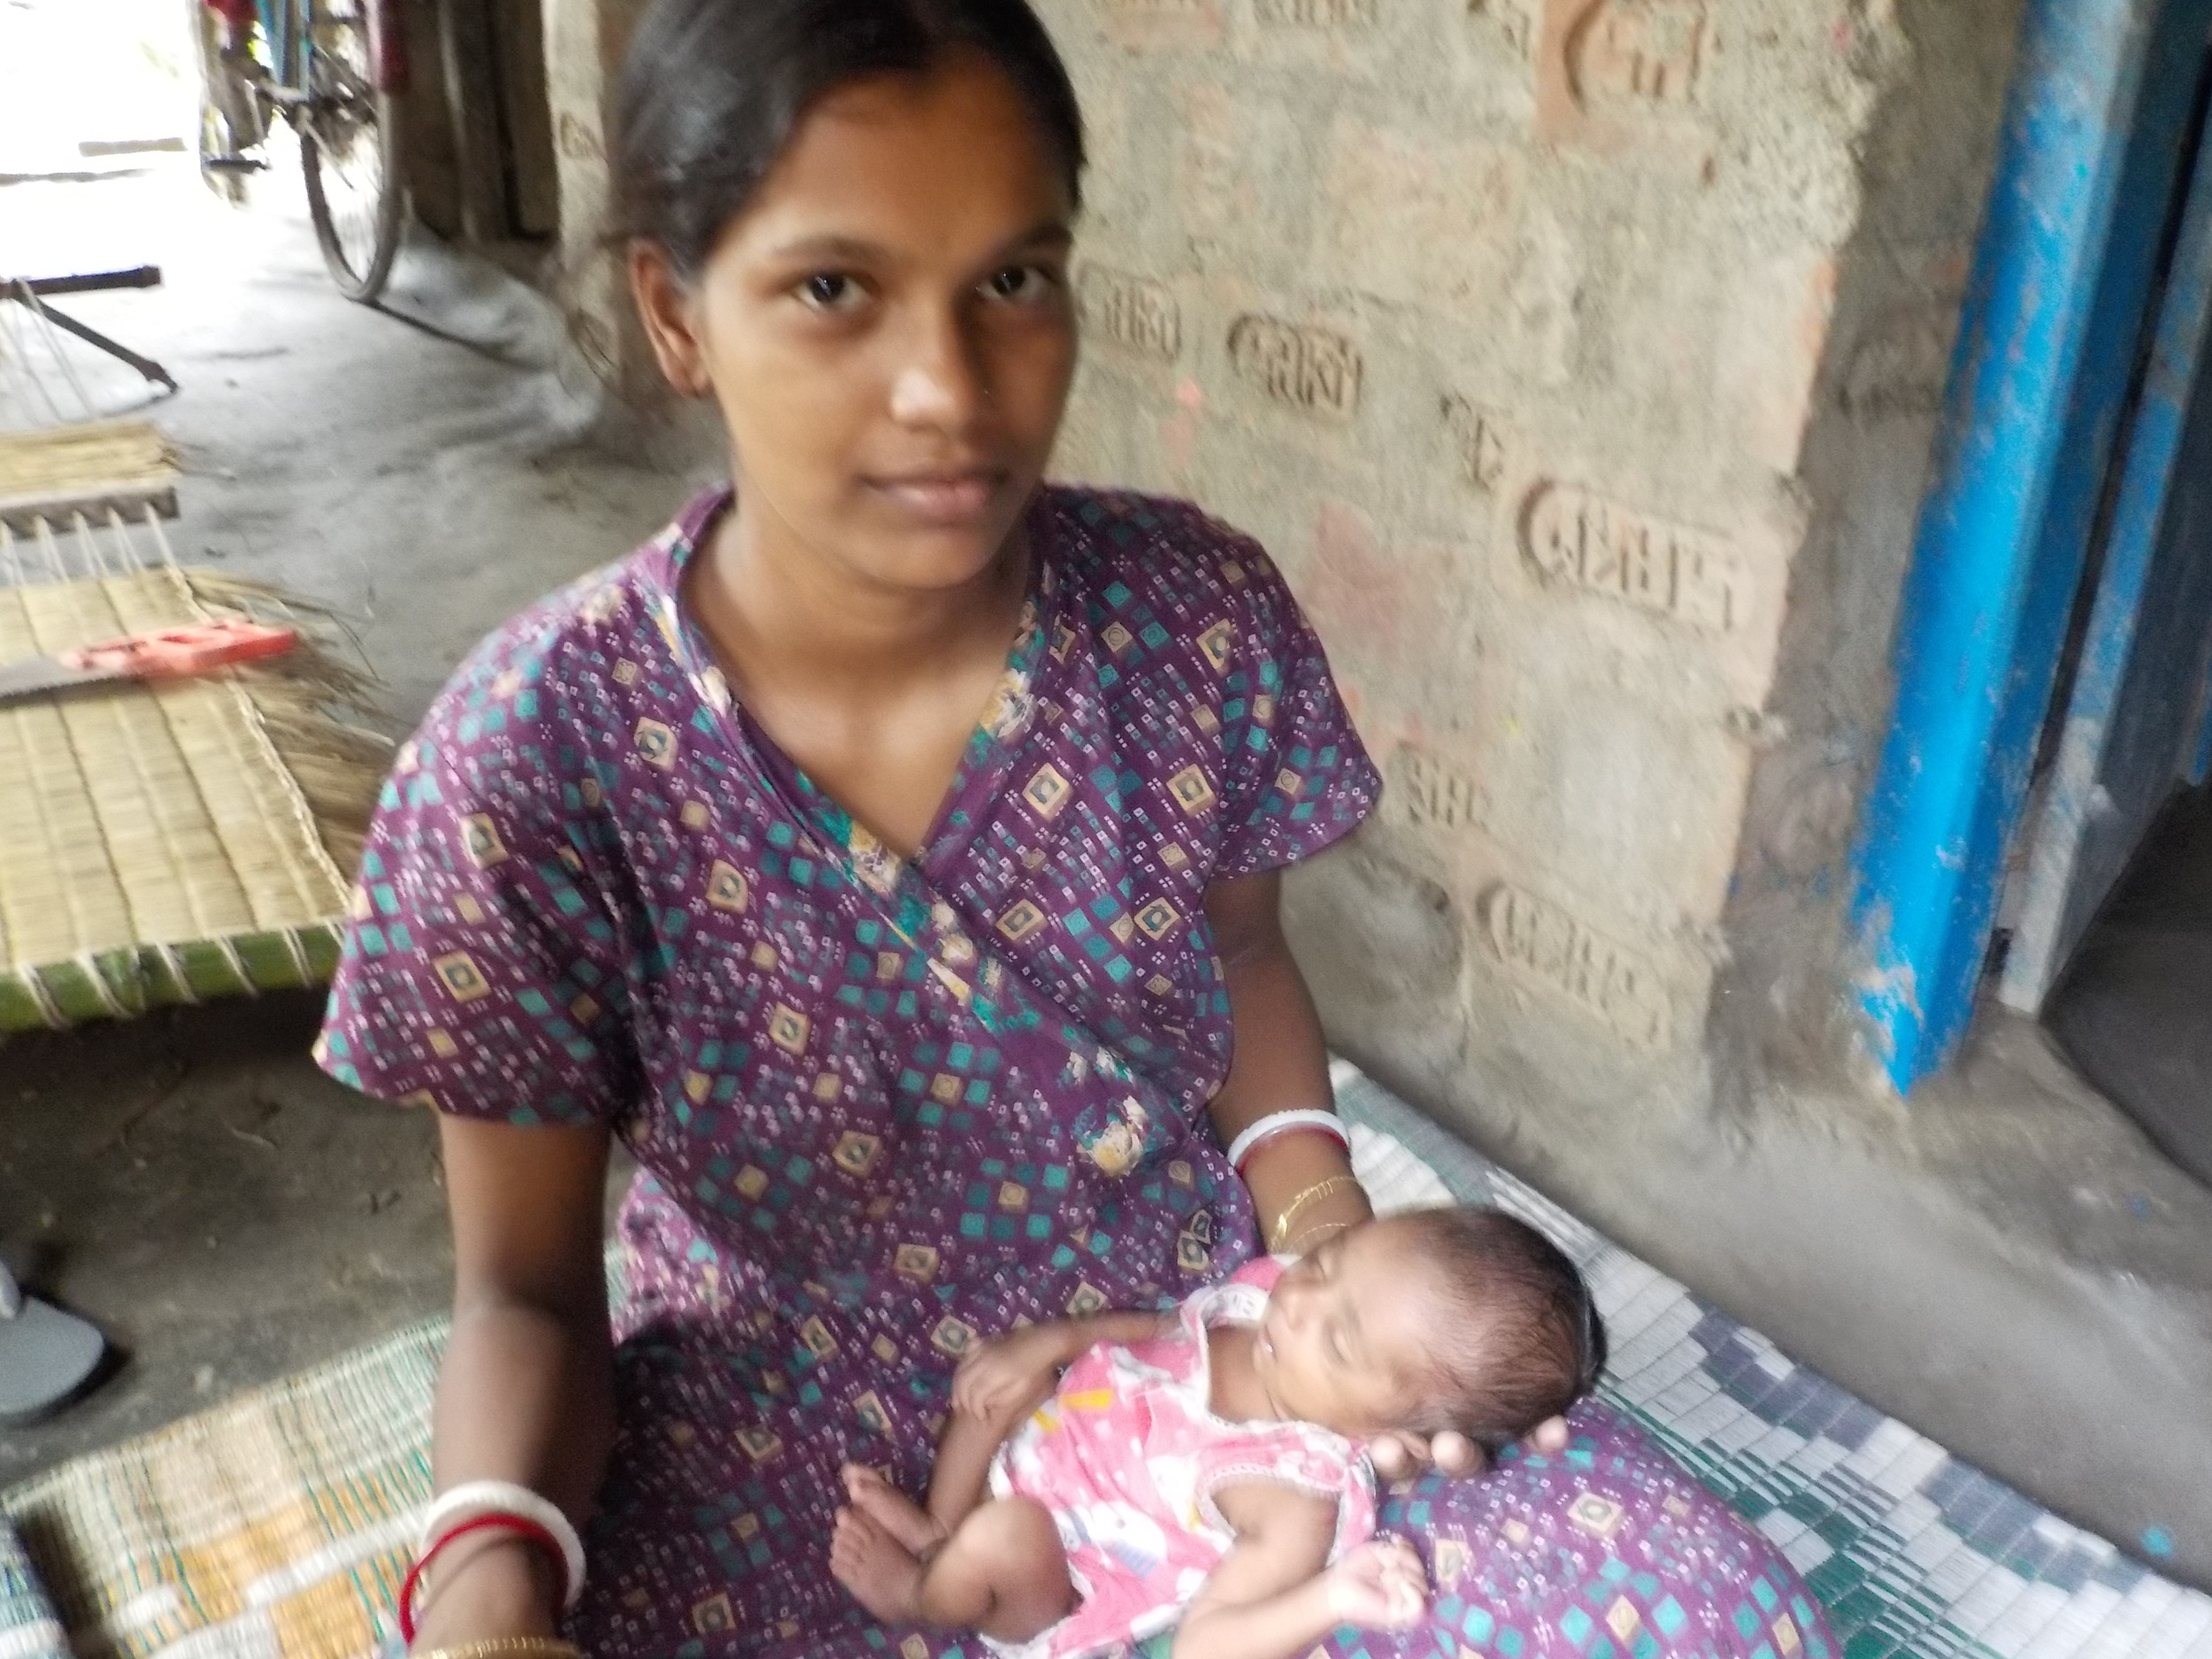 Teenage mother coddles a baby born at a low birth weight